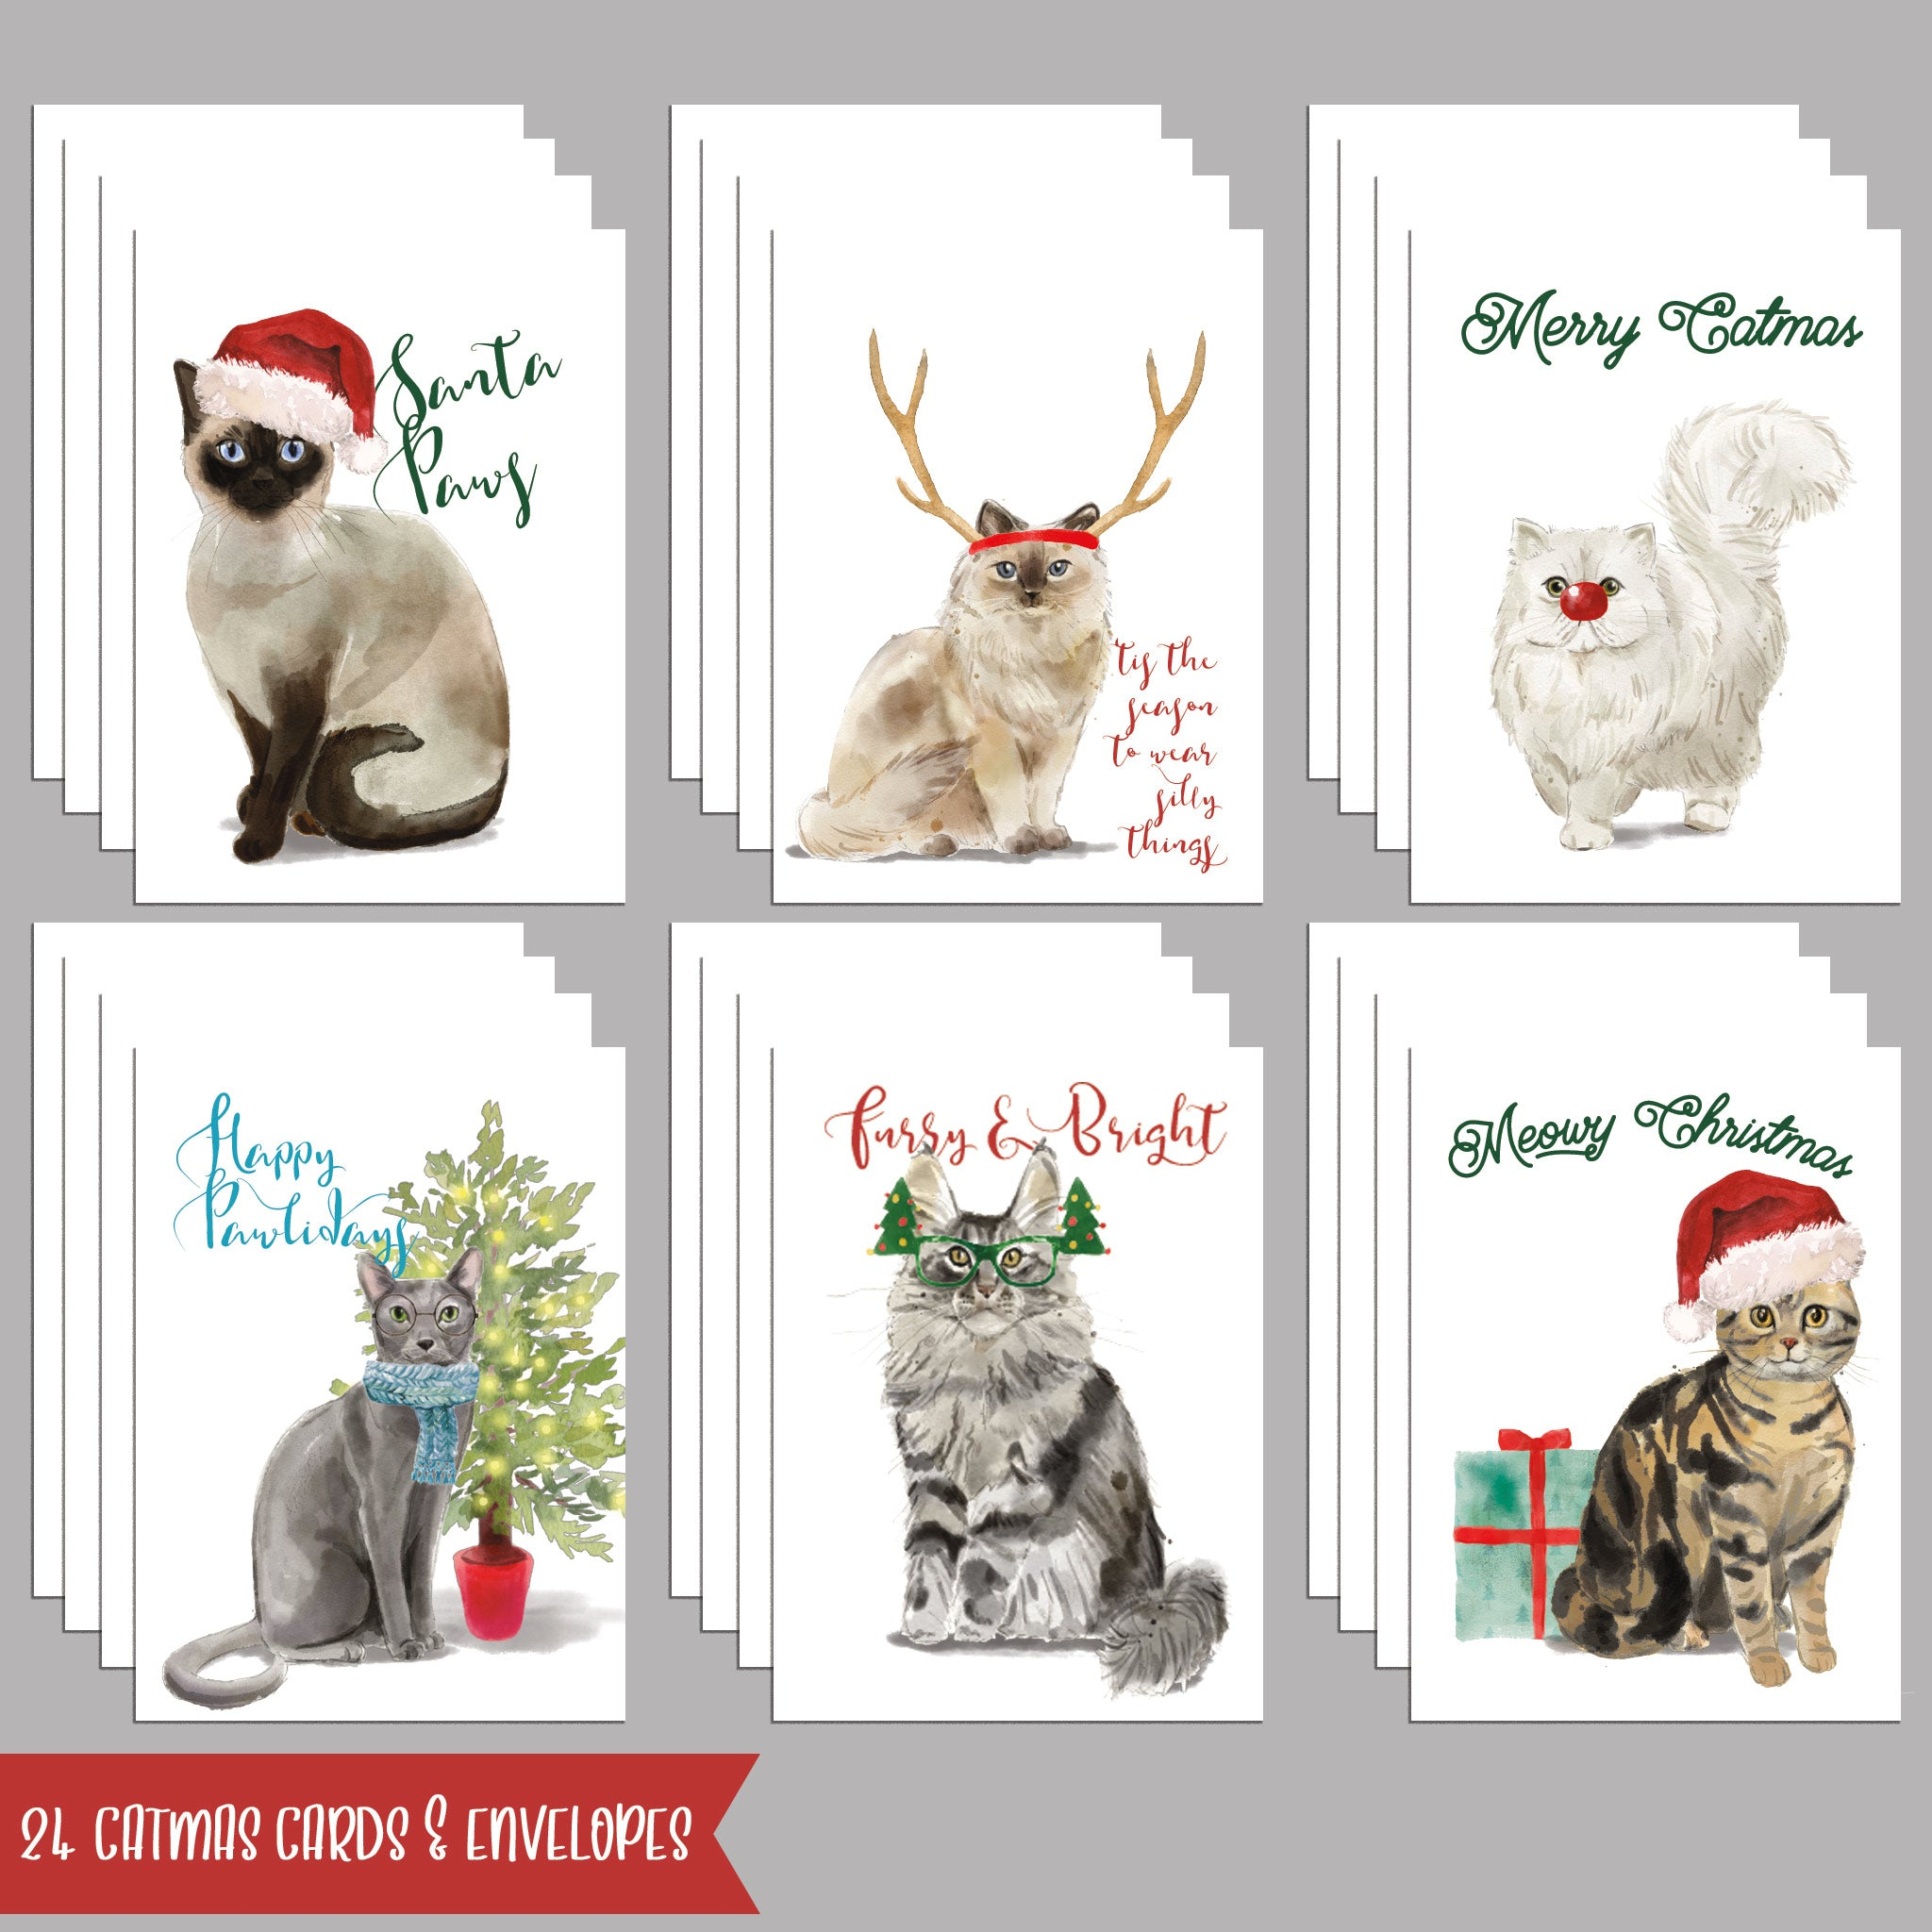 Cat Christmas Cards 2020 Meowy Christmas Cat Christmas Cards   24 Pack Funny Holiday